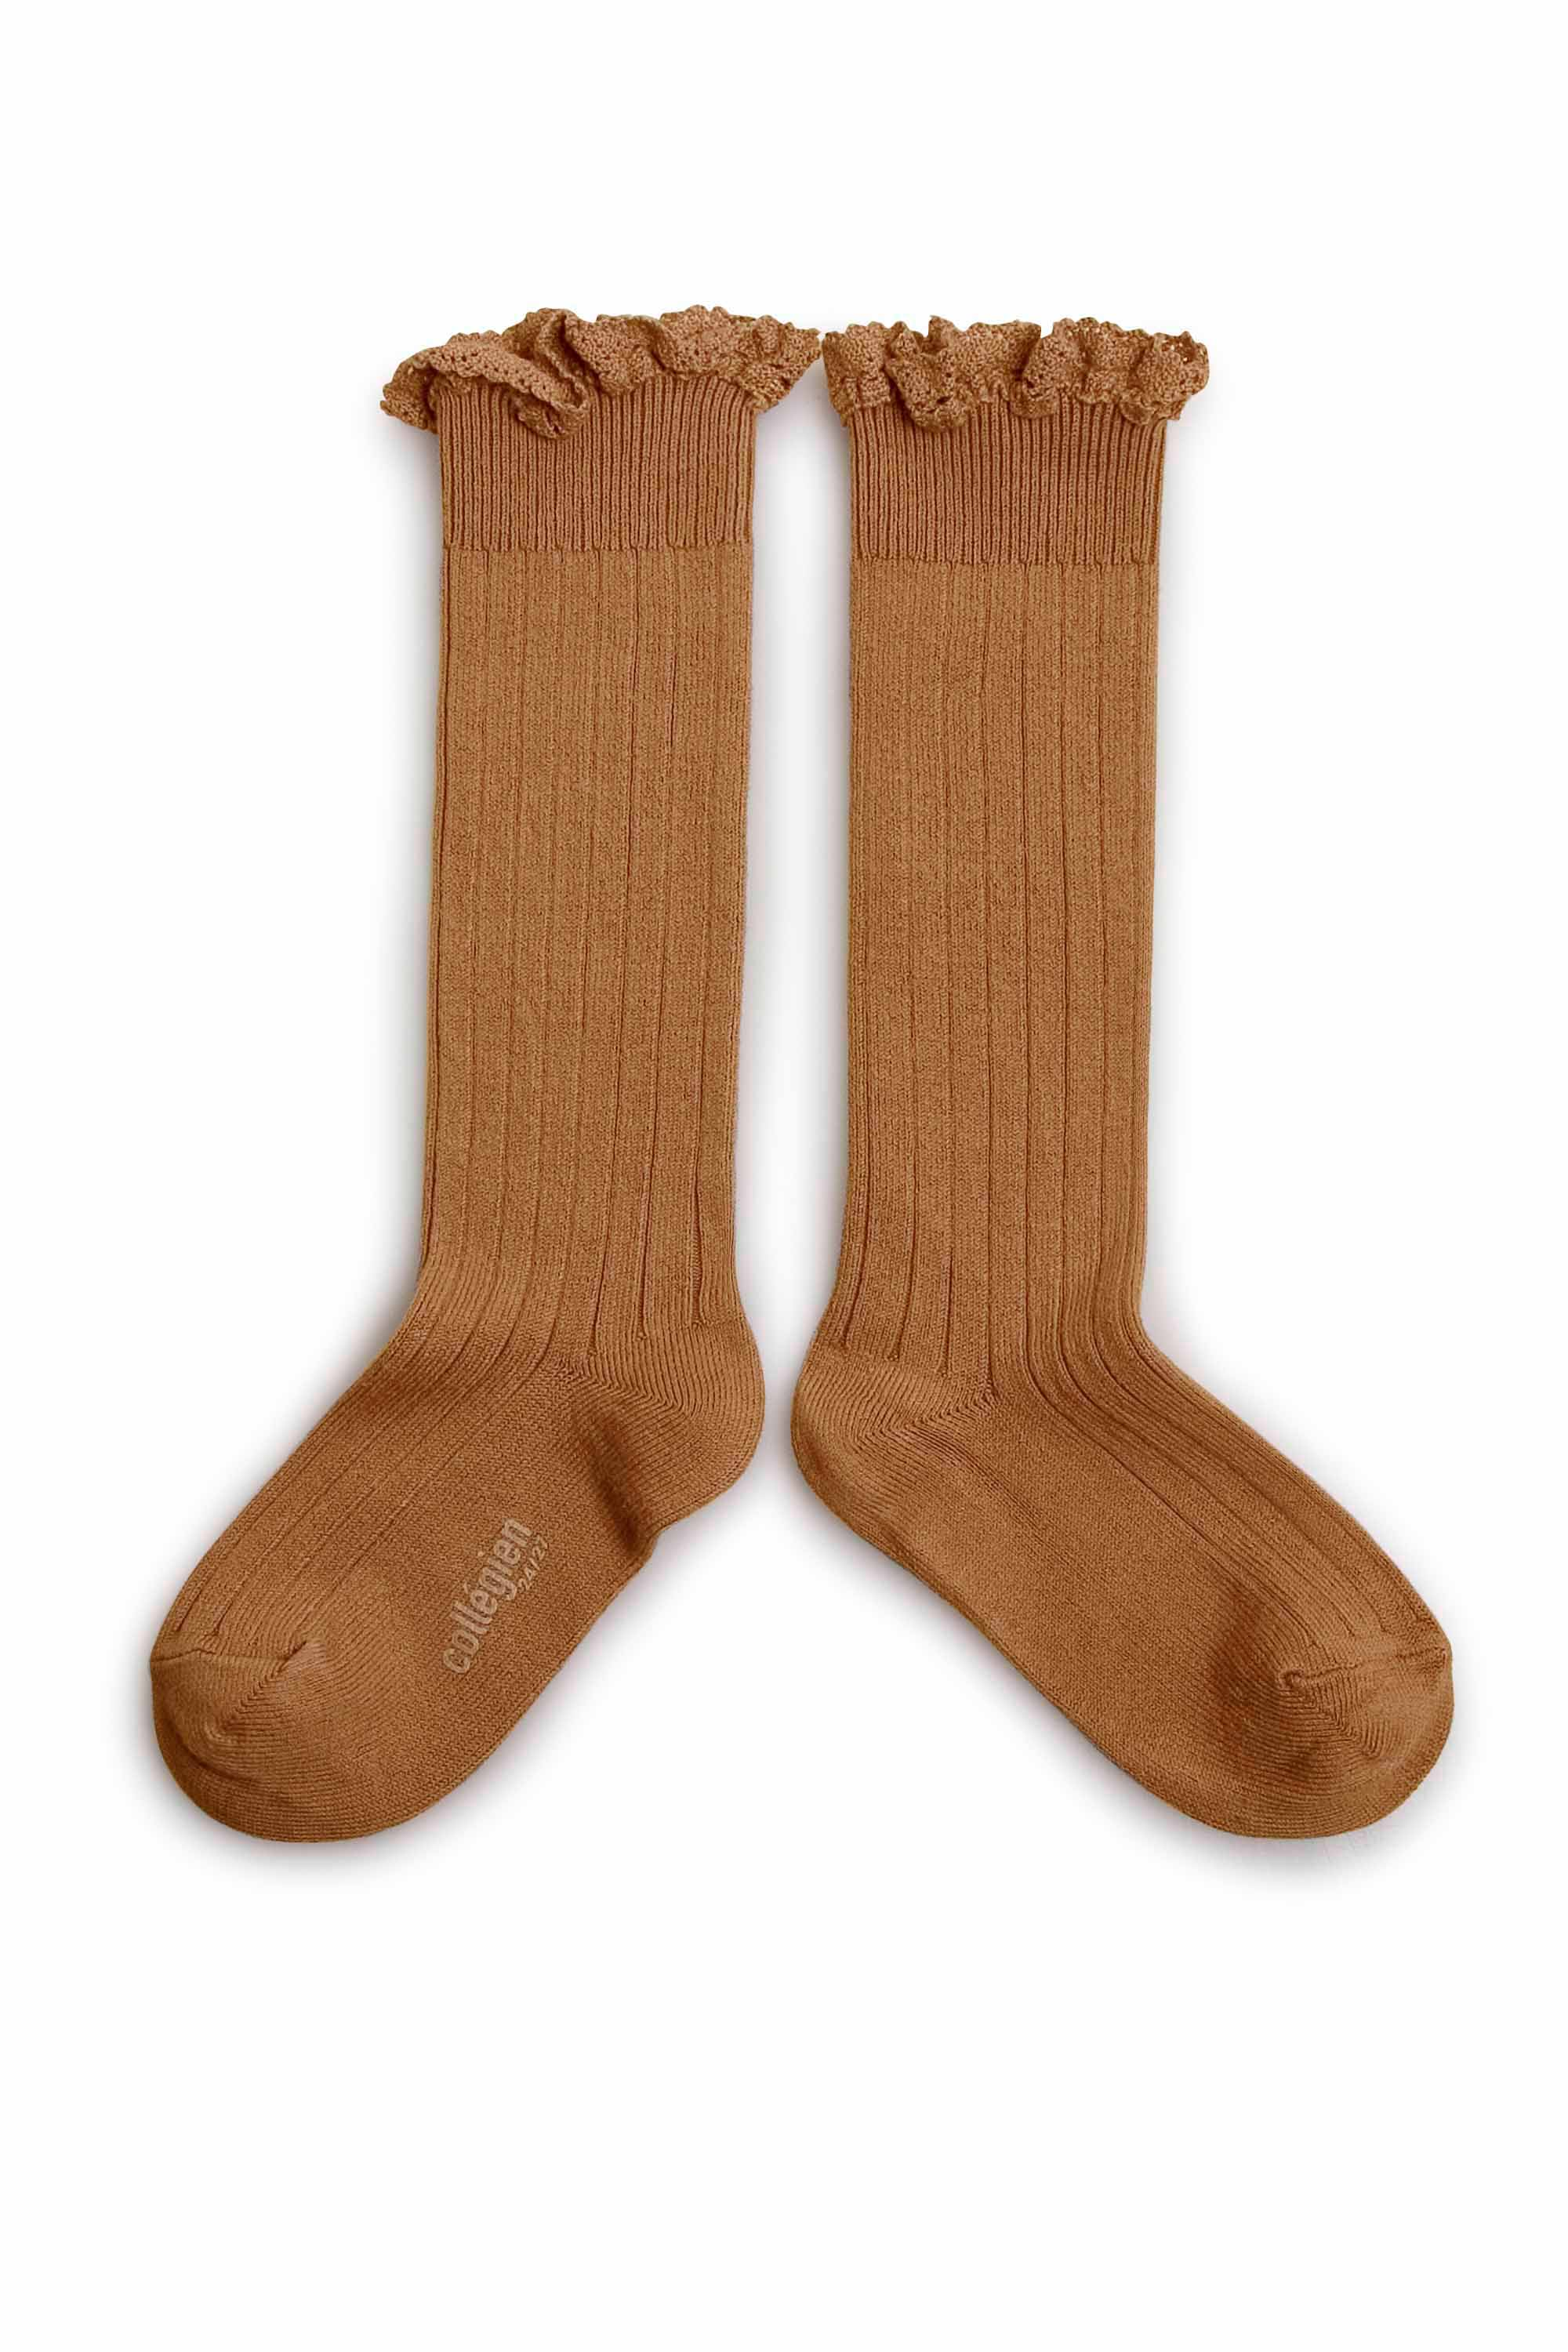 Collegien Ribbed Lace Trim Knee High Socks / Caramel Au Beurre